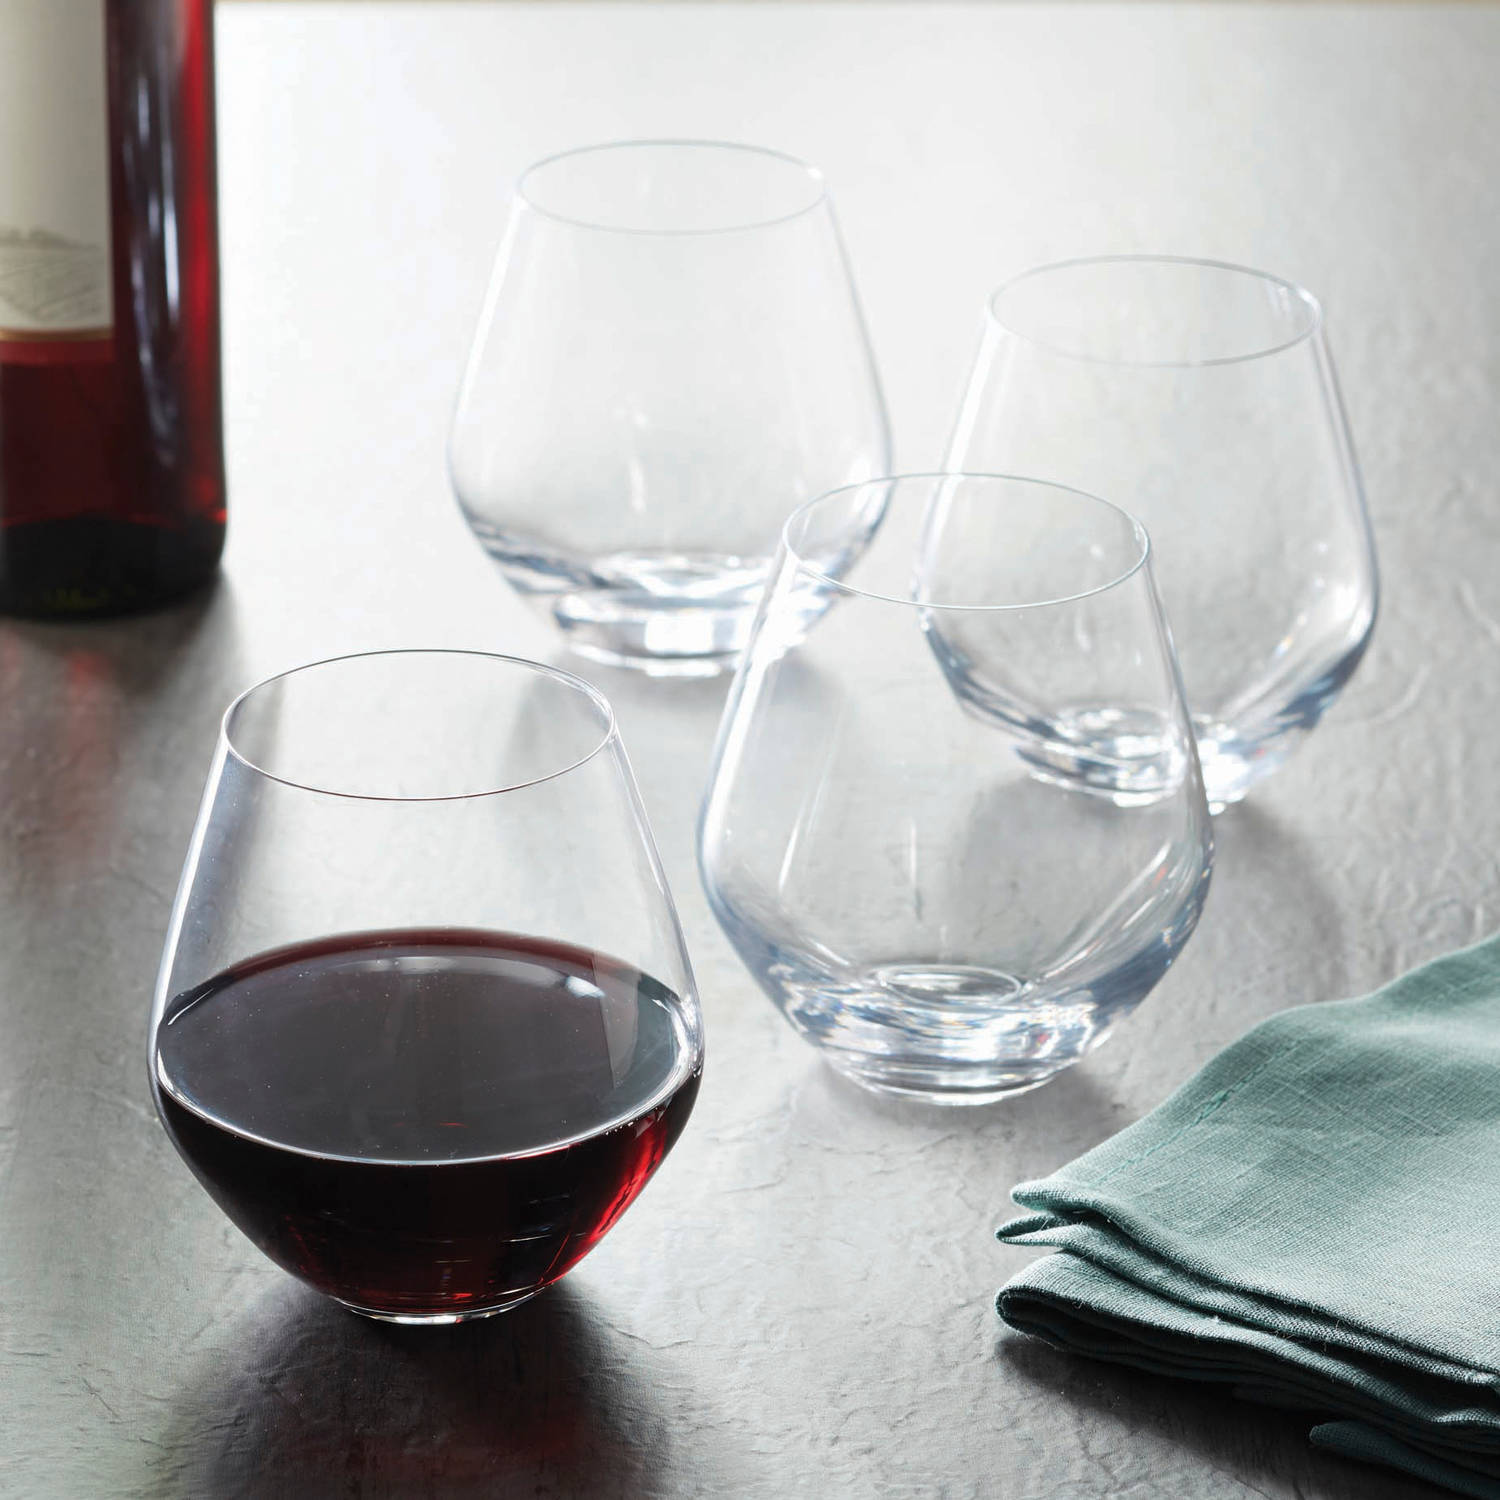 Better Homes and Garden Cielo Stemless Red Wine Glasses, Set of 4 by Circle Glass LLC